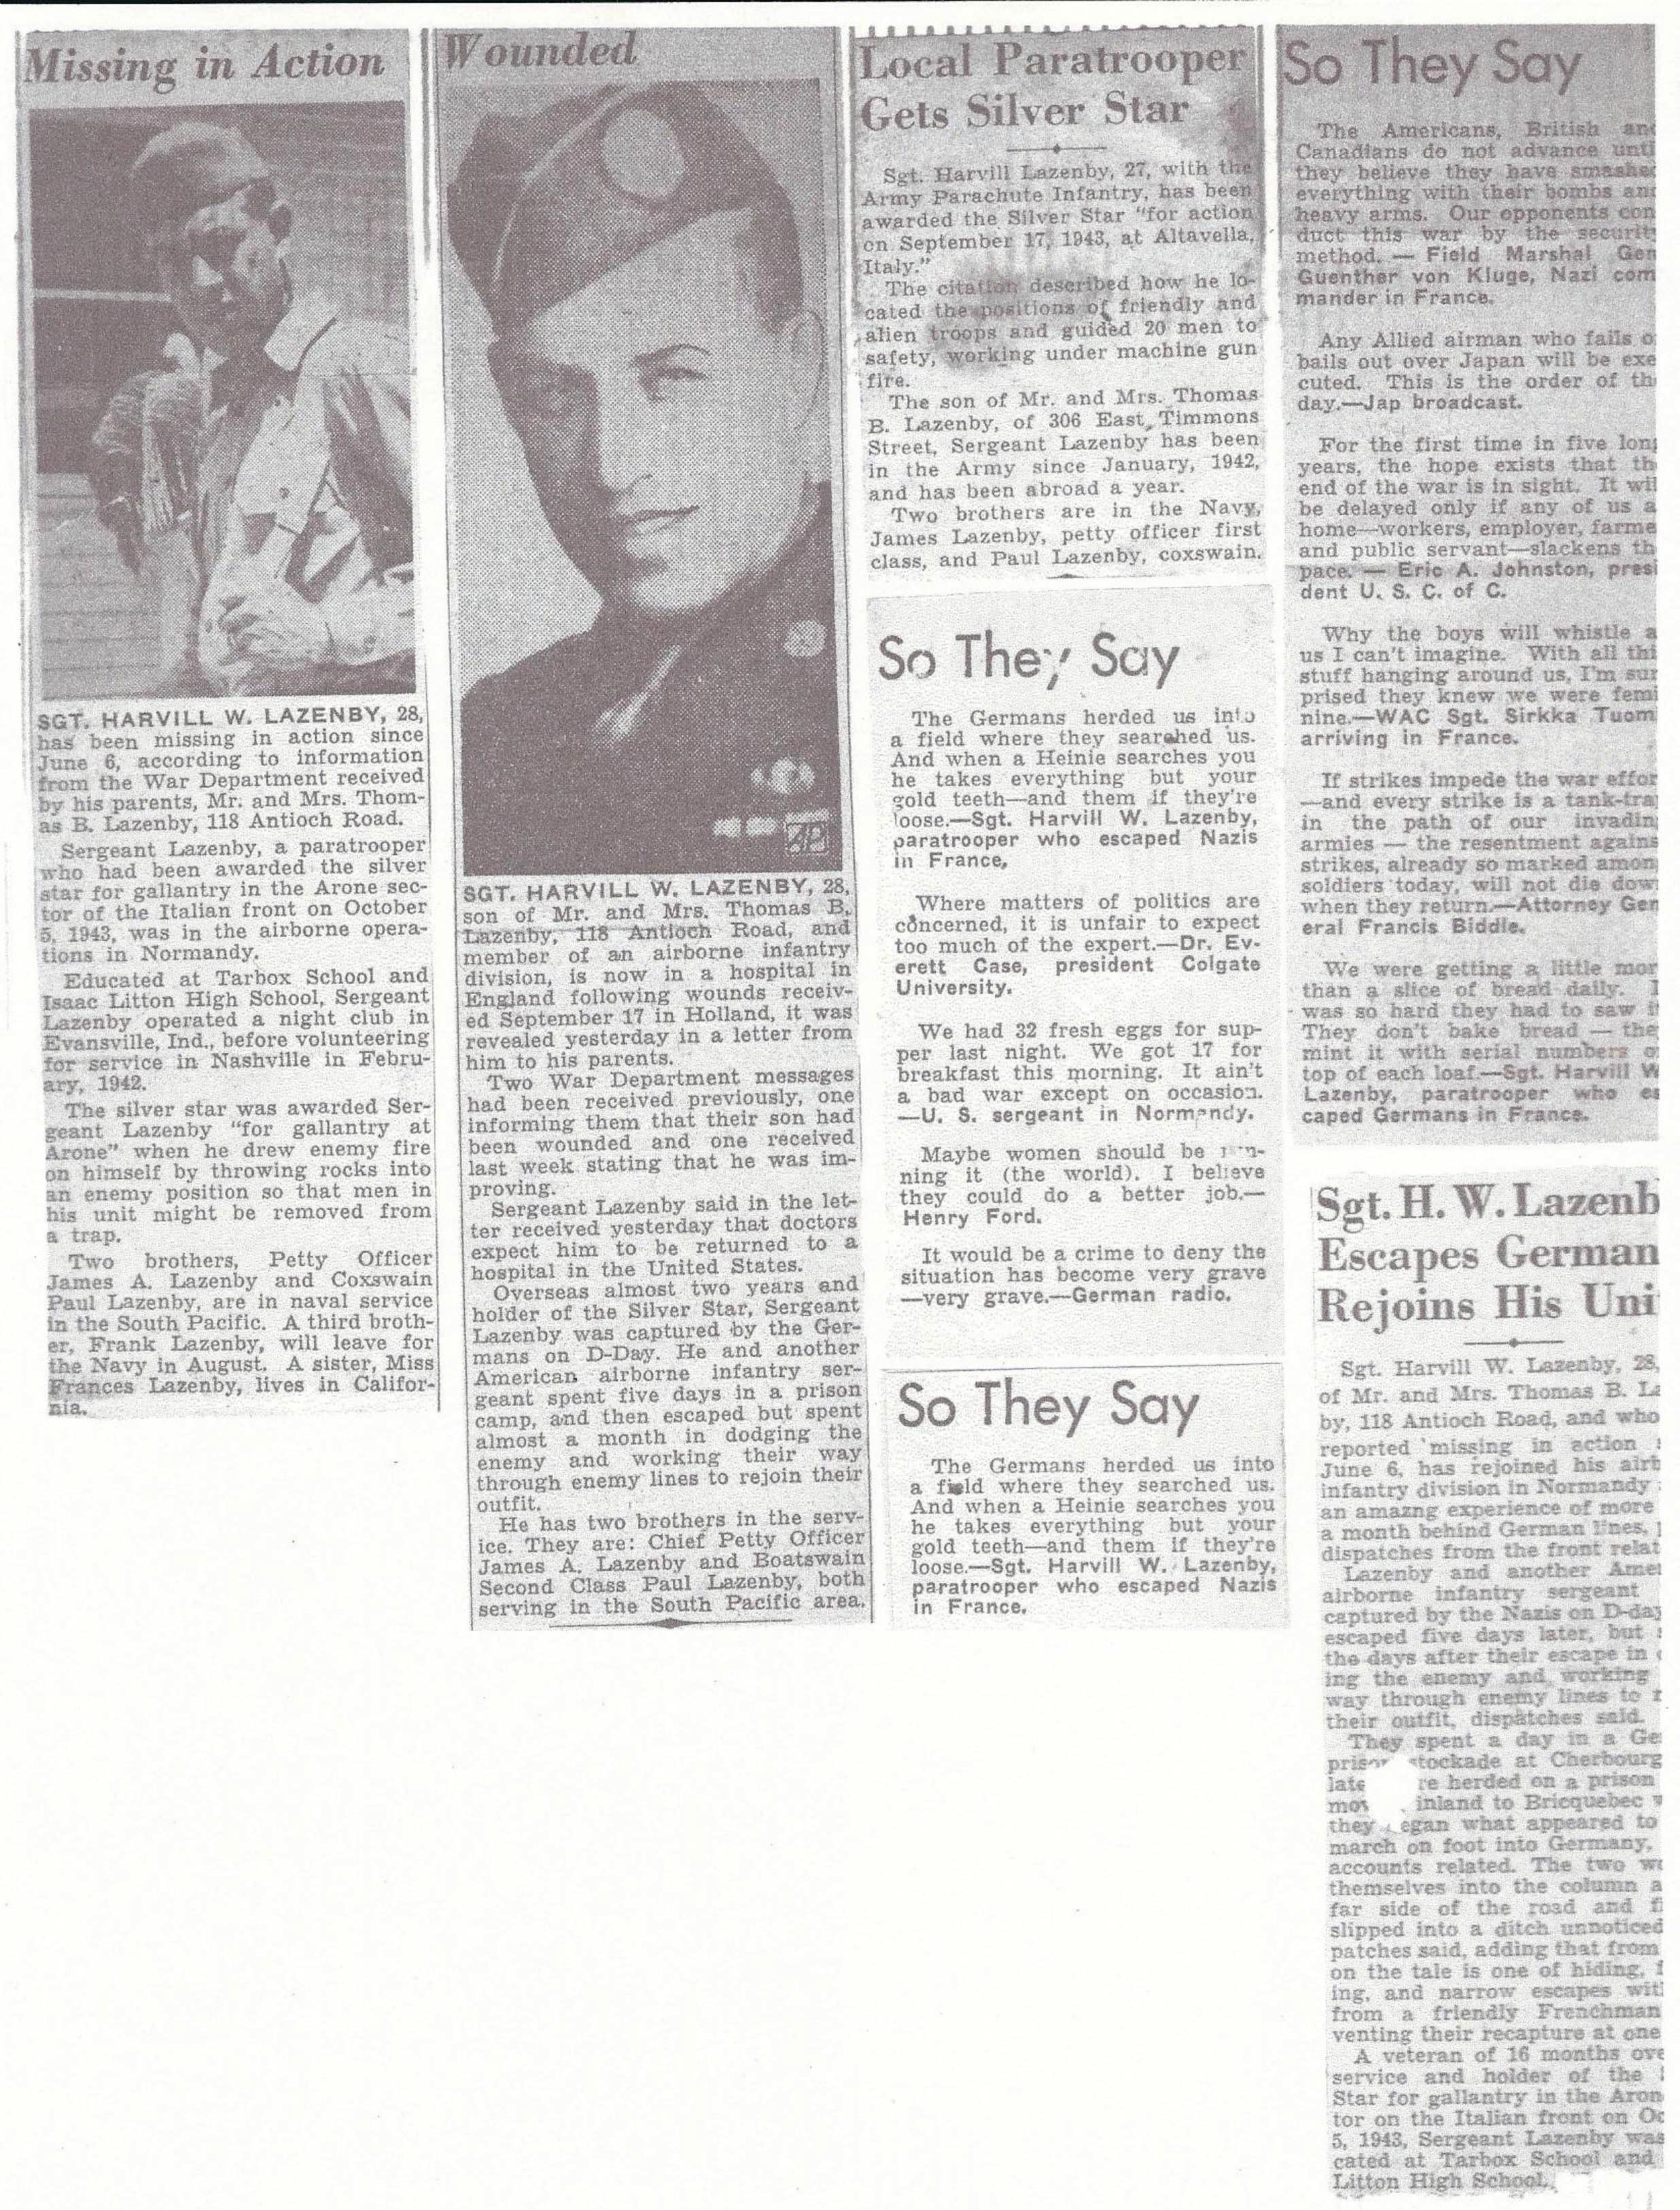 Sgt. Lazenby news clippings